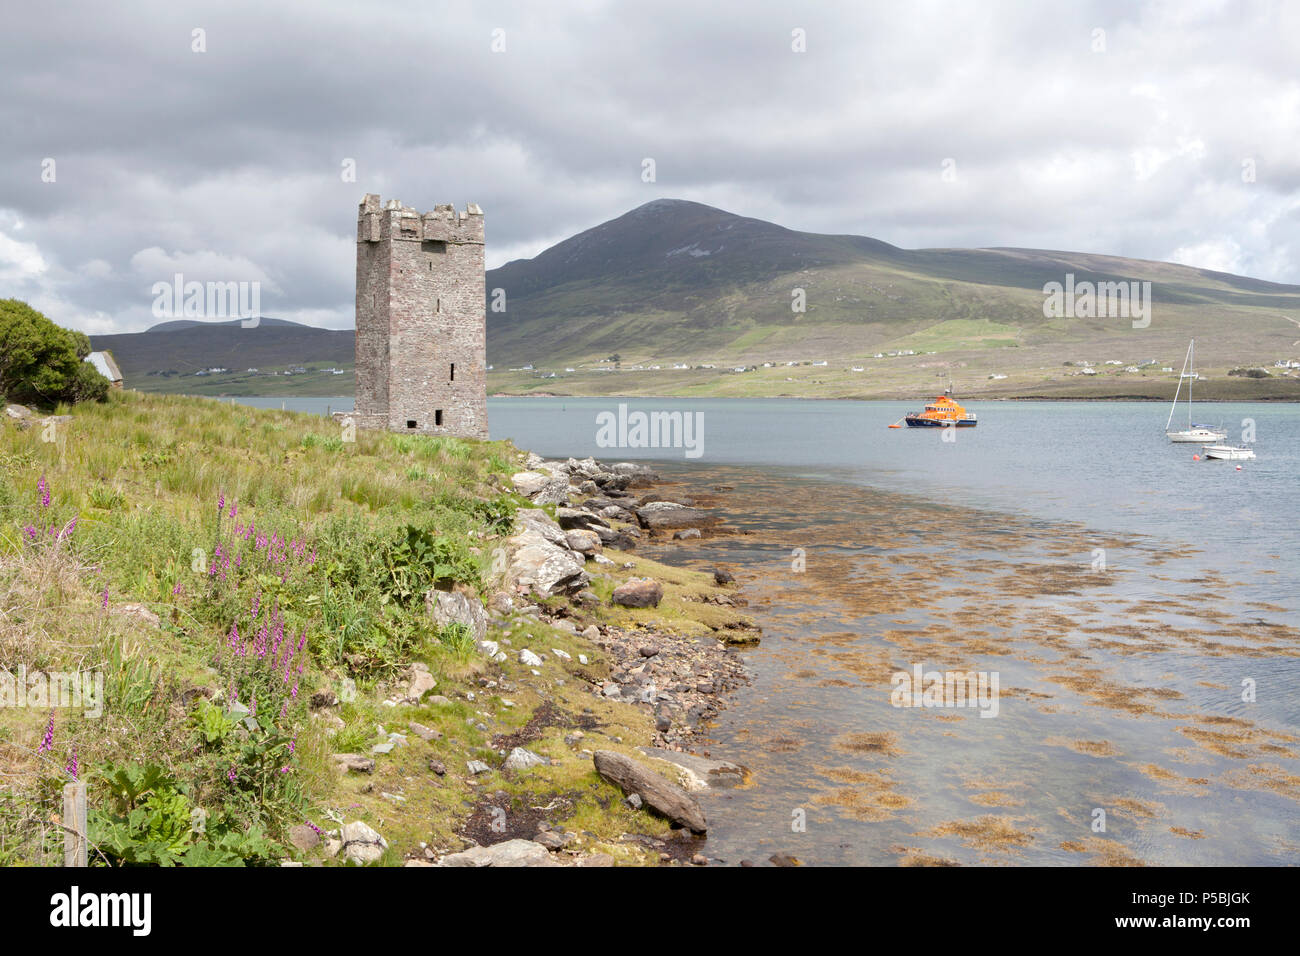 Kildamhnait Castle is a 15th century tower house associated with the O' Malley Clan on Achill Island in County Mayo, Ireland - Stock Image